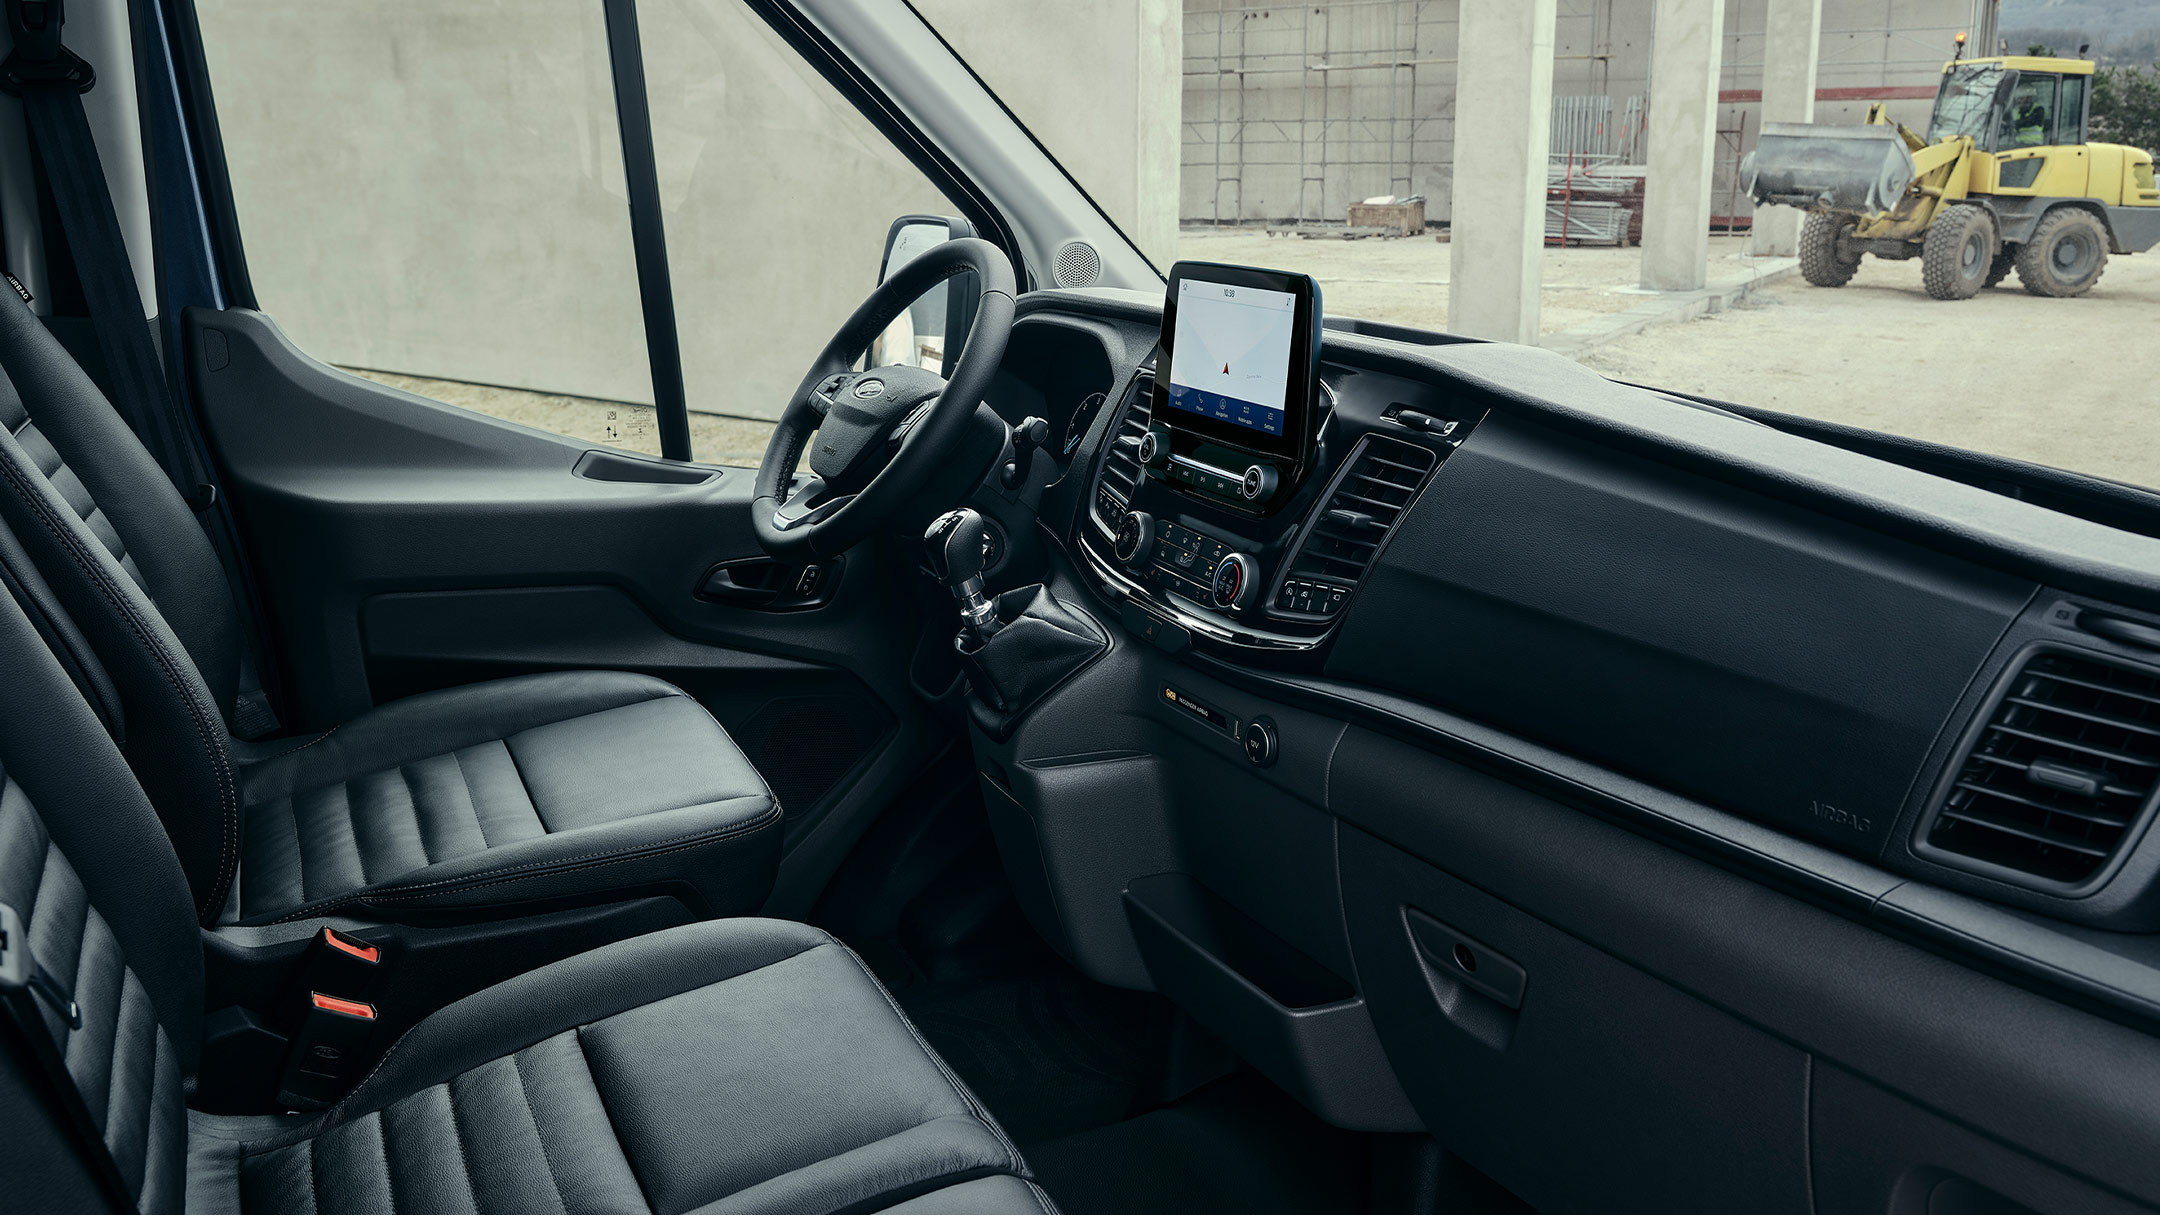 New Ford Transit Van Trail Interior with dashboard and steering wheel